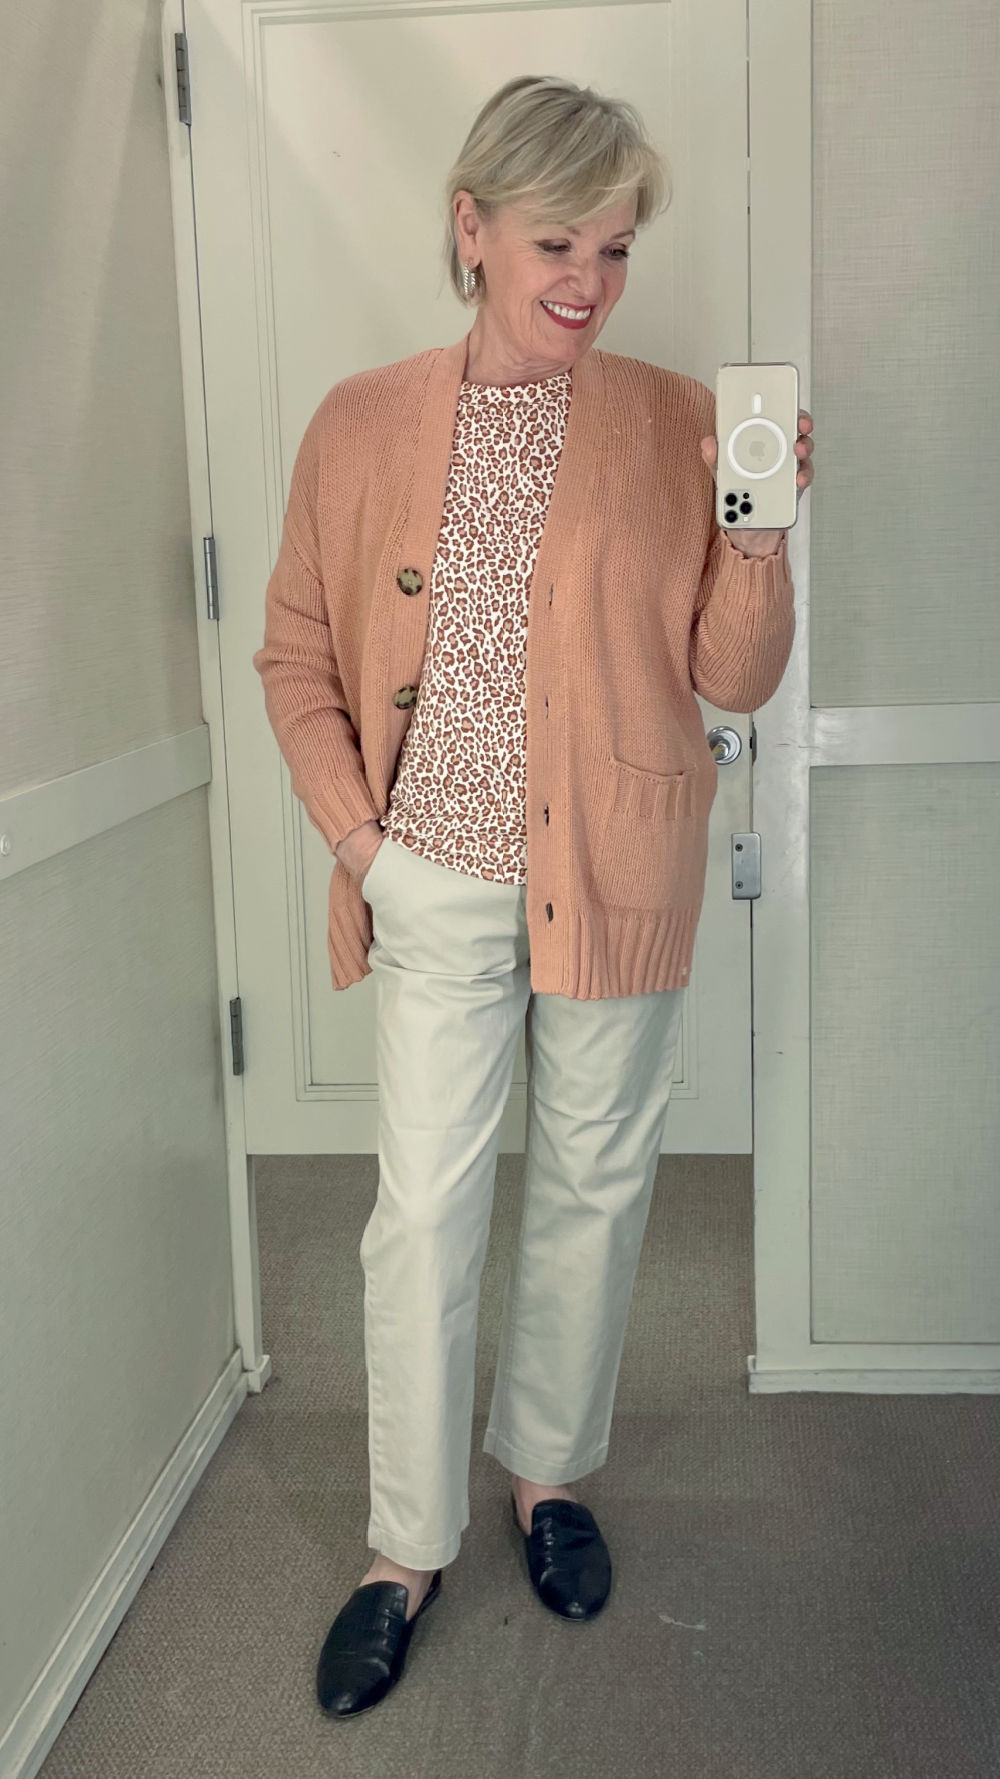 WOMAN WEARING LONG CARDIGAN AND CHINOS IN DRESSING ROOM